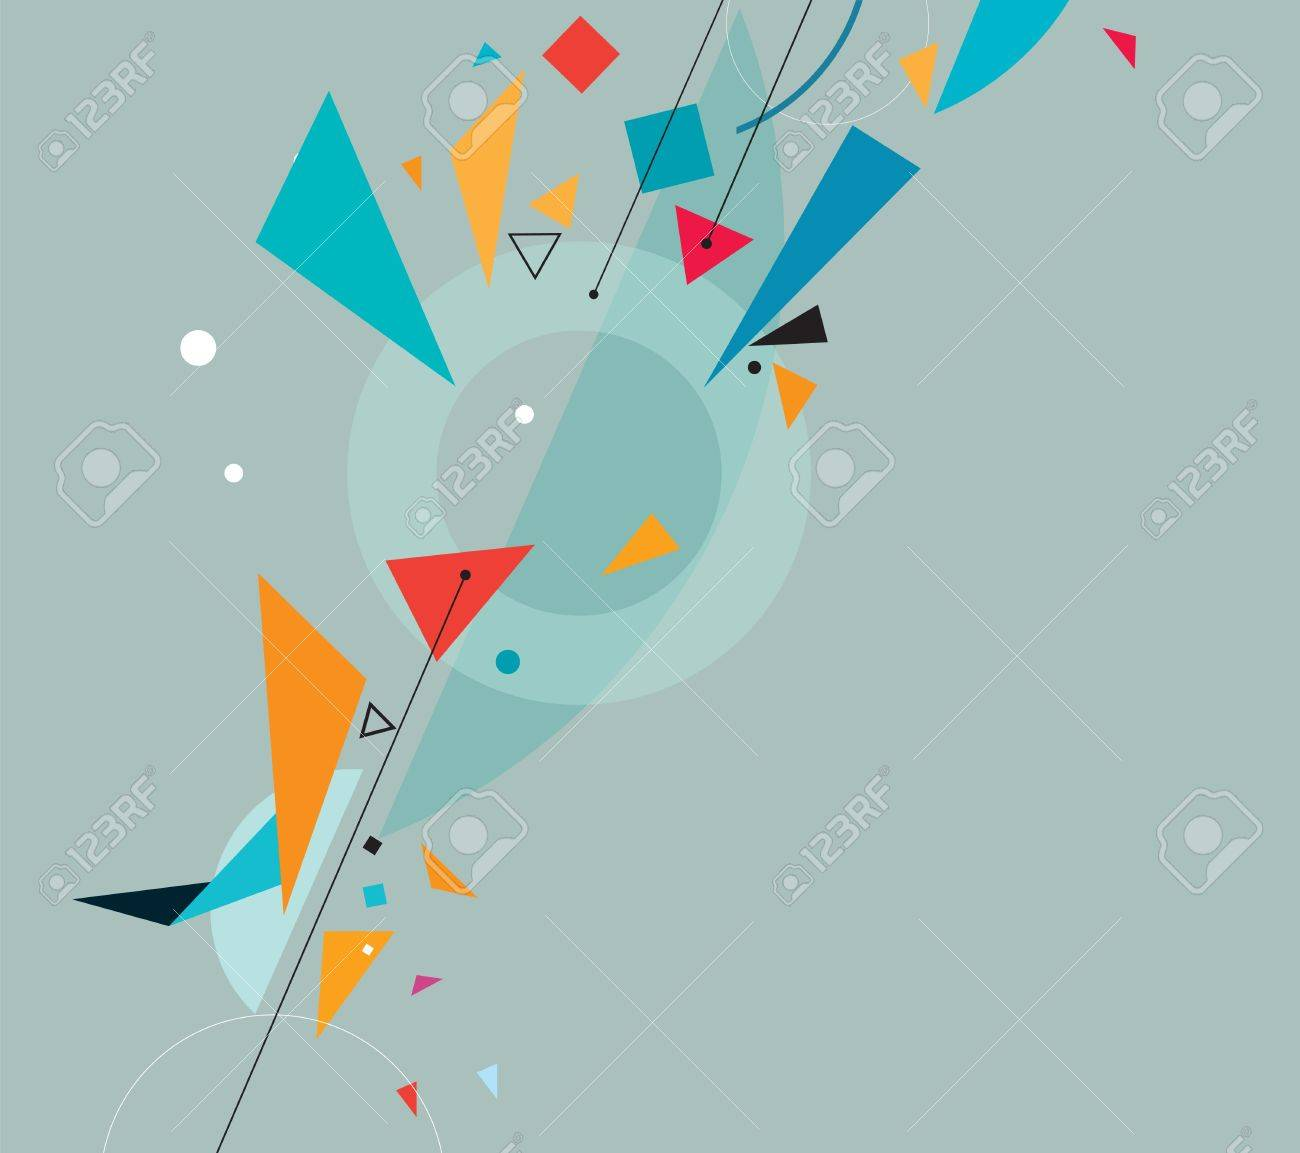 Vector illustration abstract background - 20269817